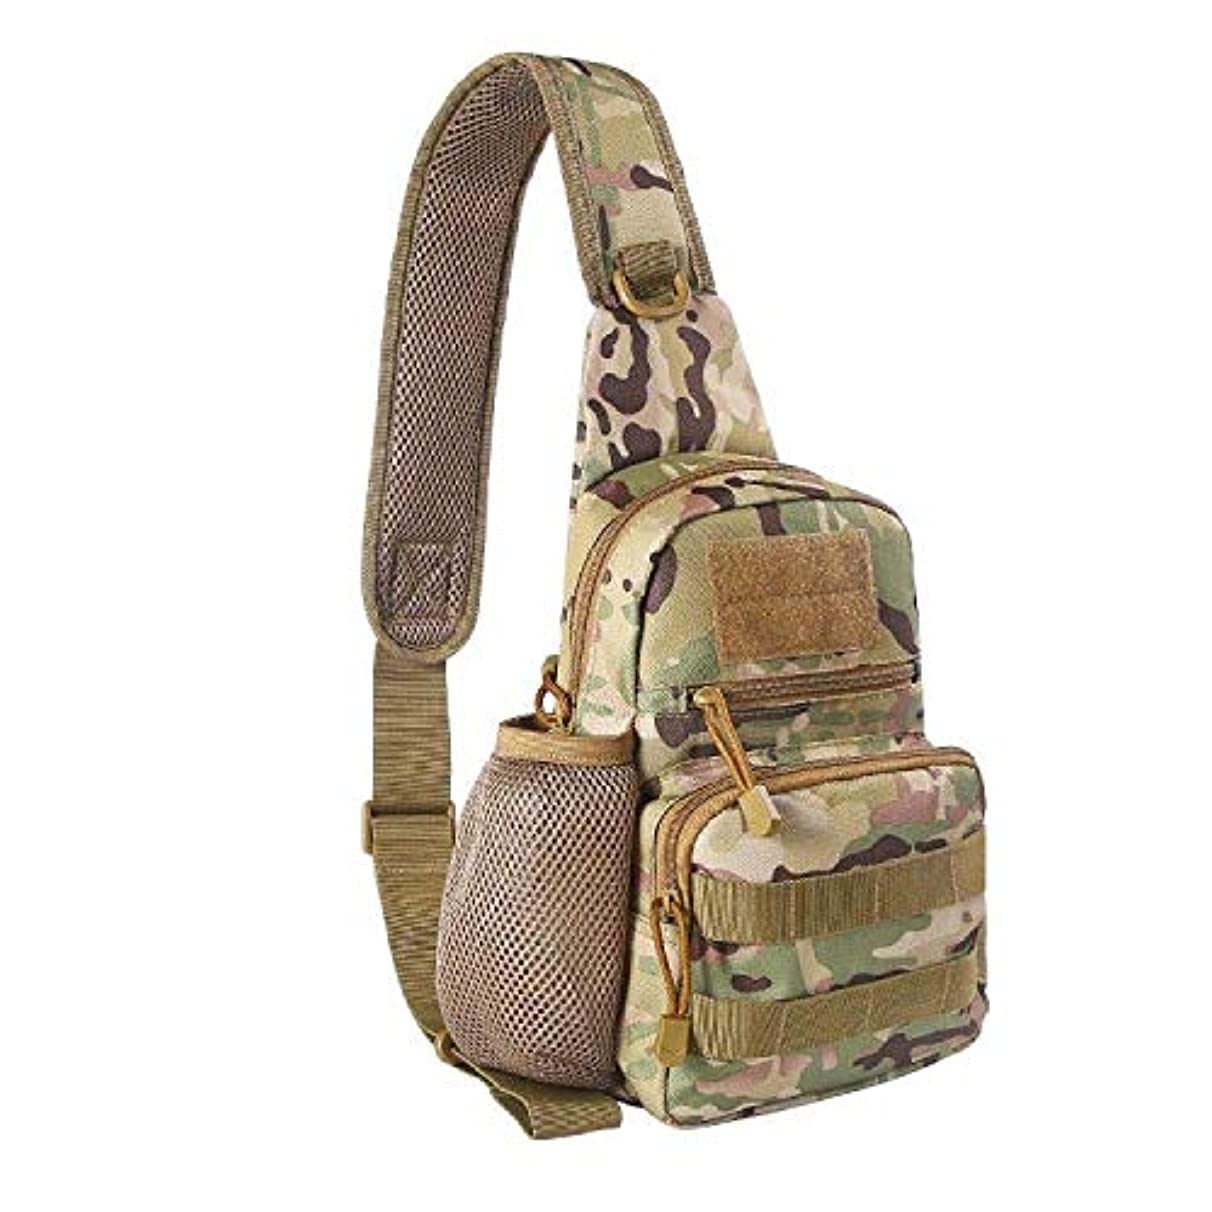 EDOBIL Tactical Bag, Messenger Bag Best Outdoor Sling Bag for Men and Women - Small One Military Bag for Trekking,Camping,Hiking,Cycling Rover Sling Daypack